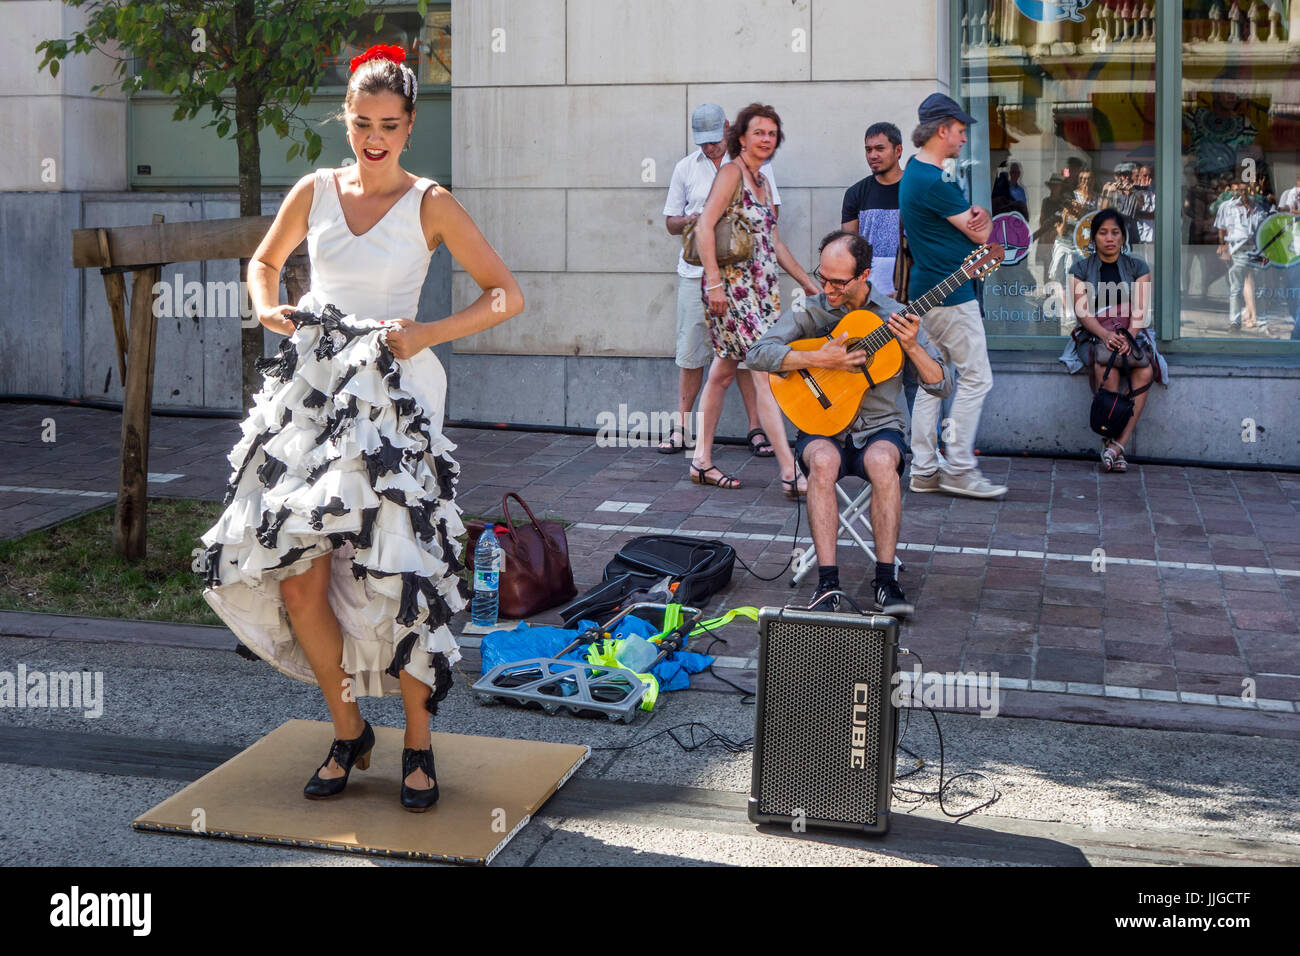 Guitarist and flamenco dancer with traditional white dress dancing as street performance during summer festivities - Stock Image